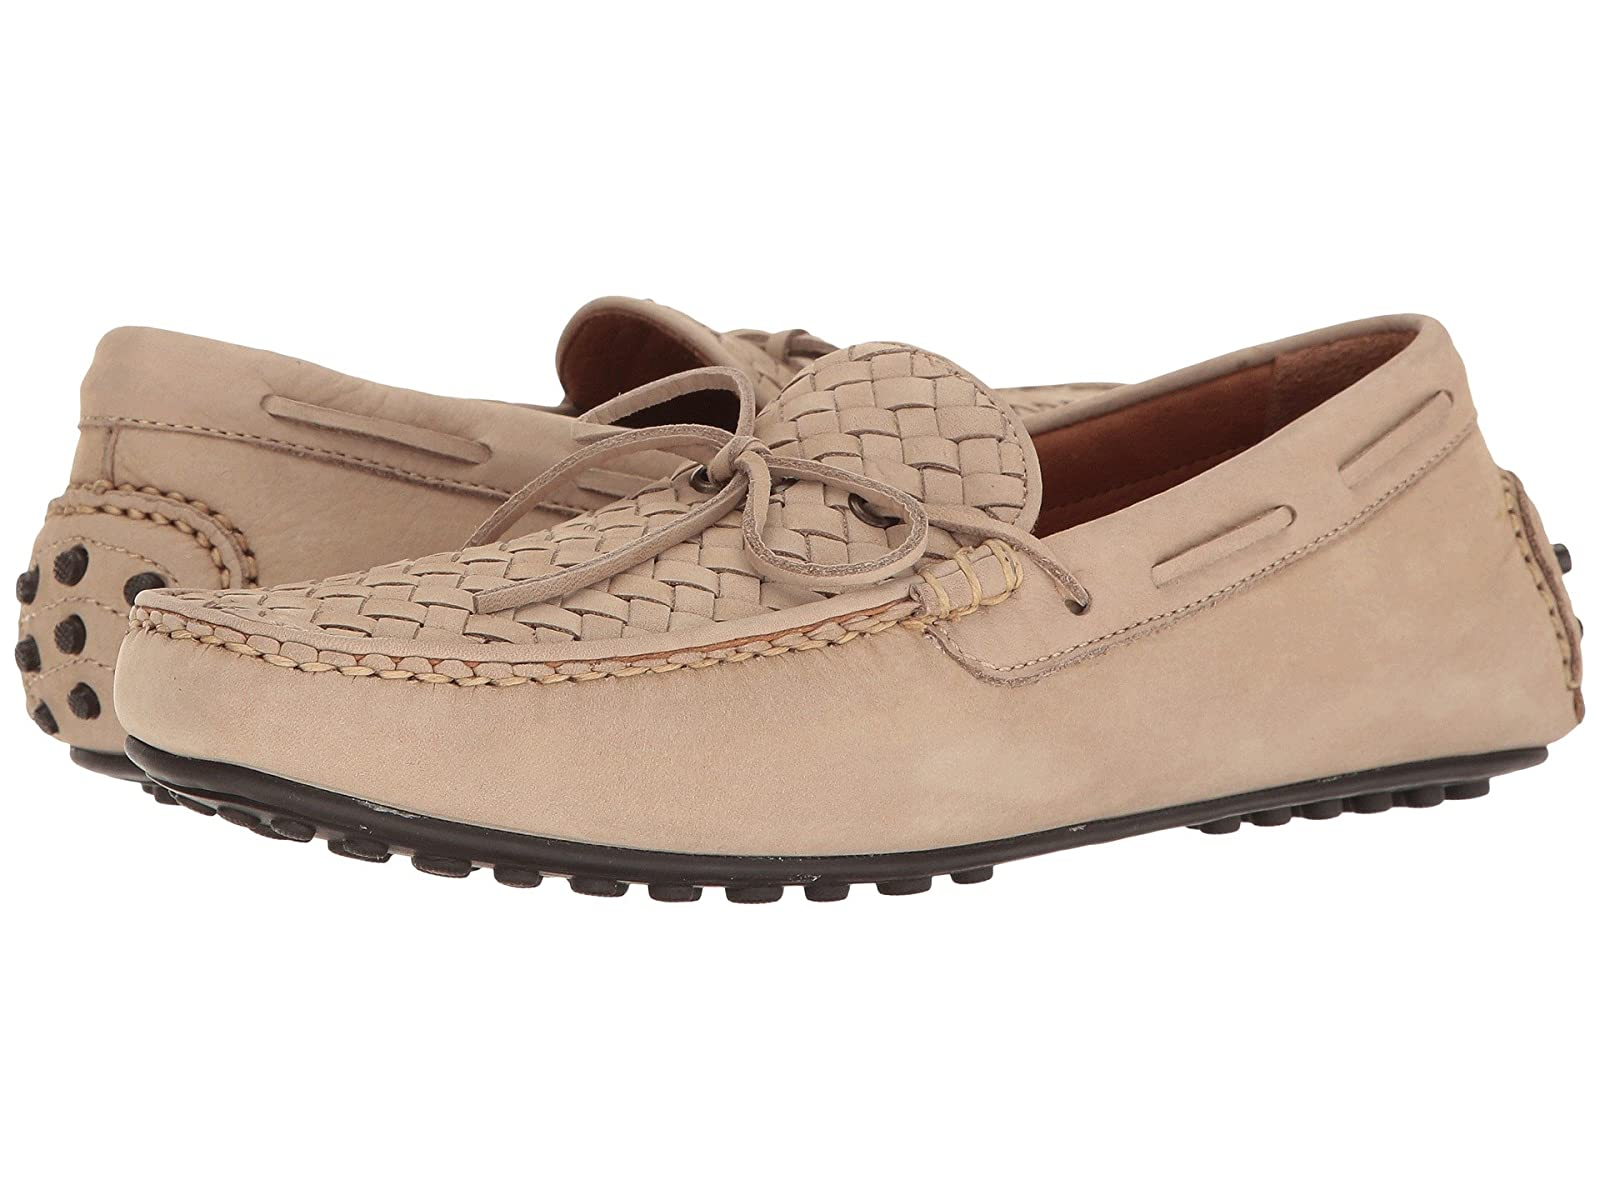 Frye Allen WovenCheap and distinctive eye-catching shoes